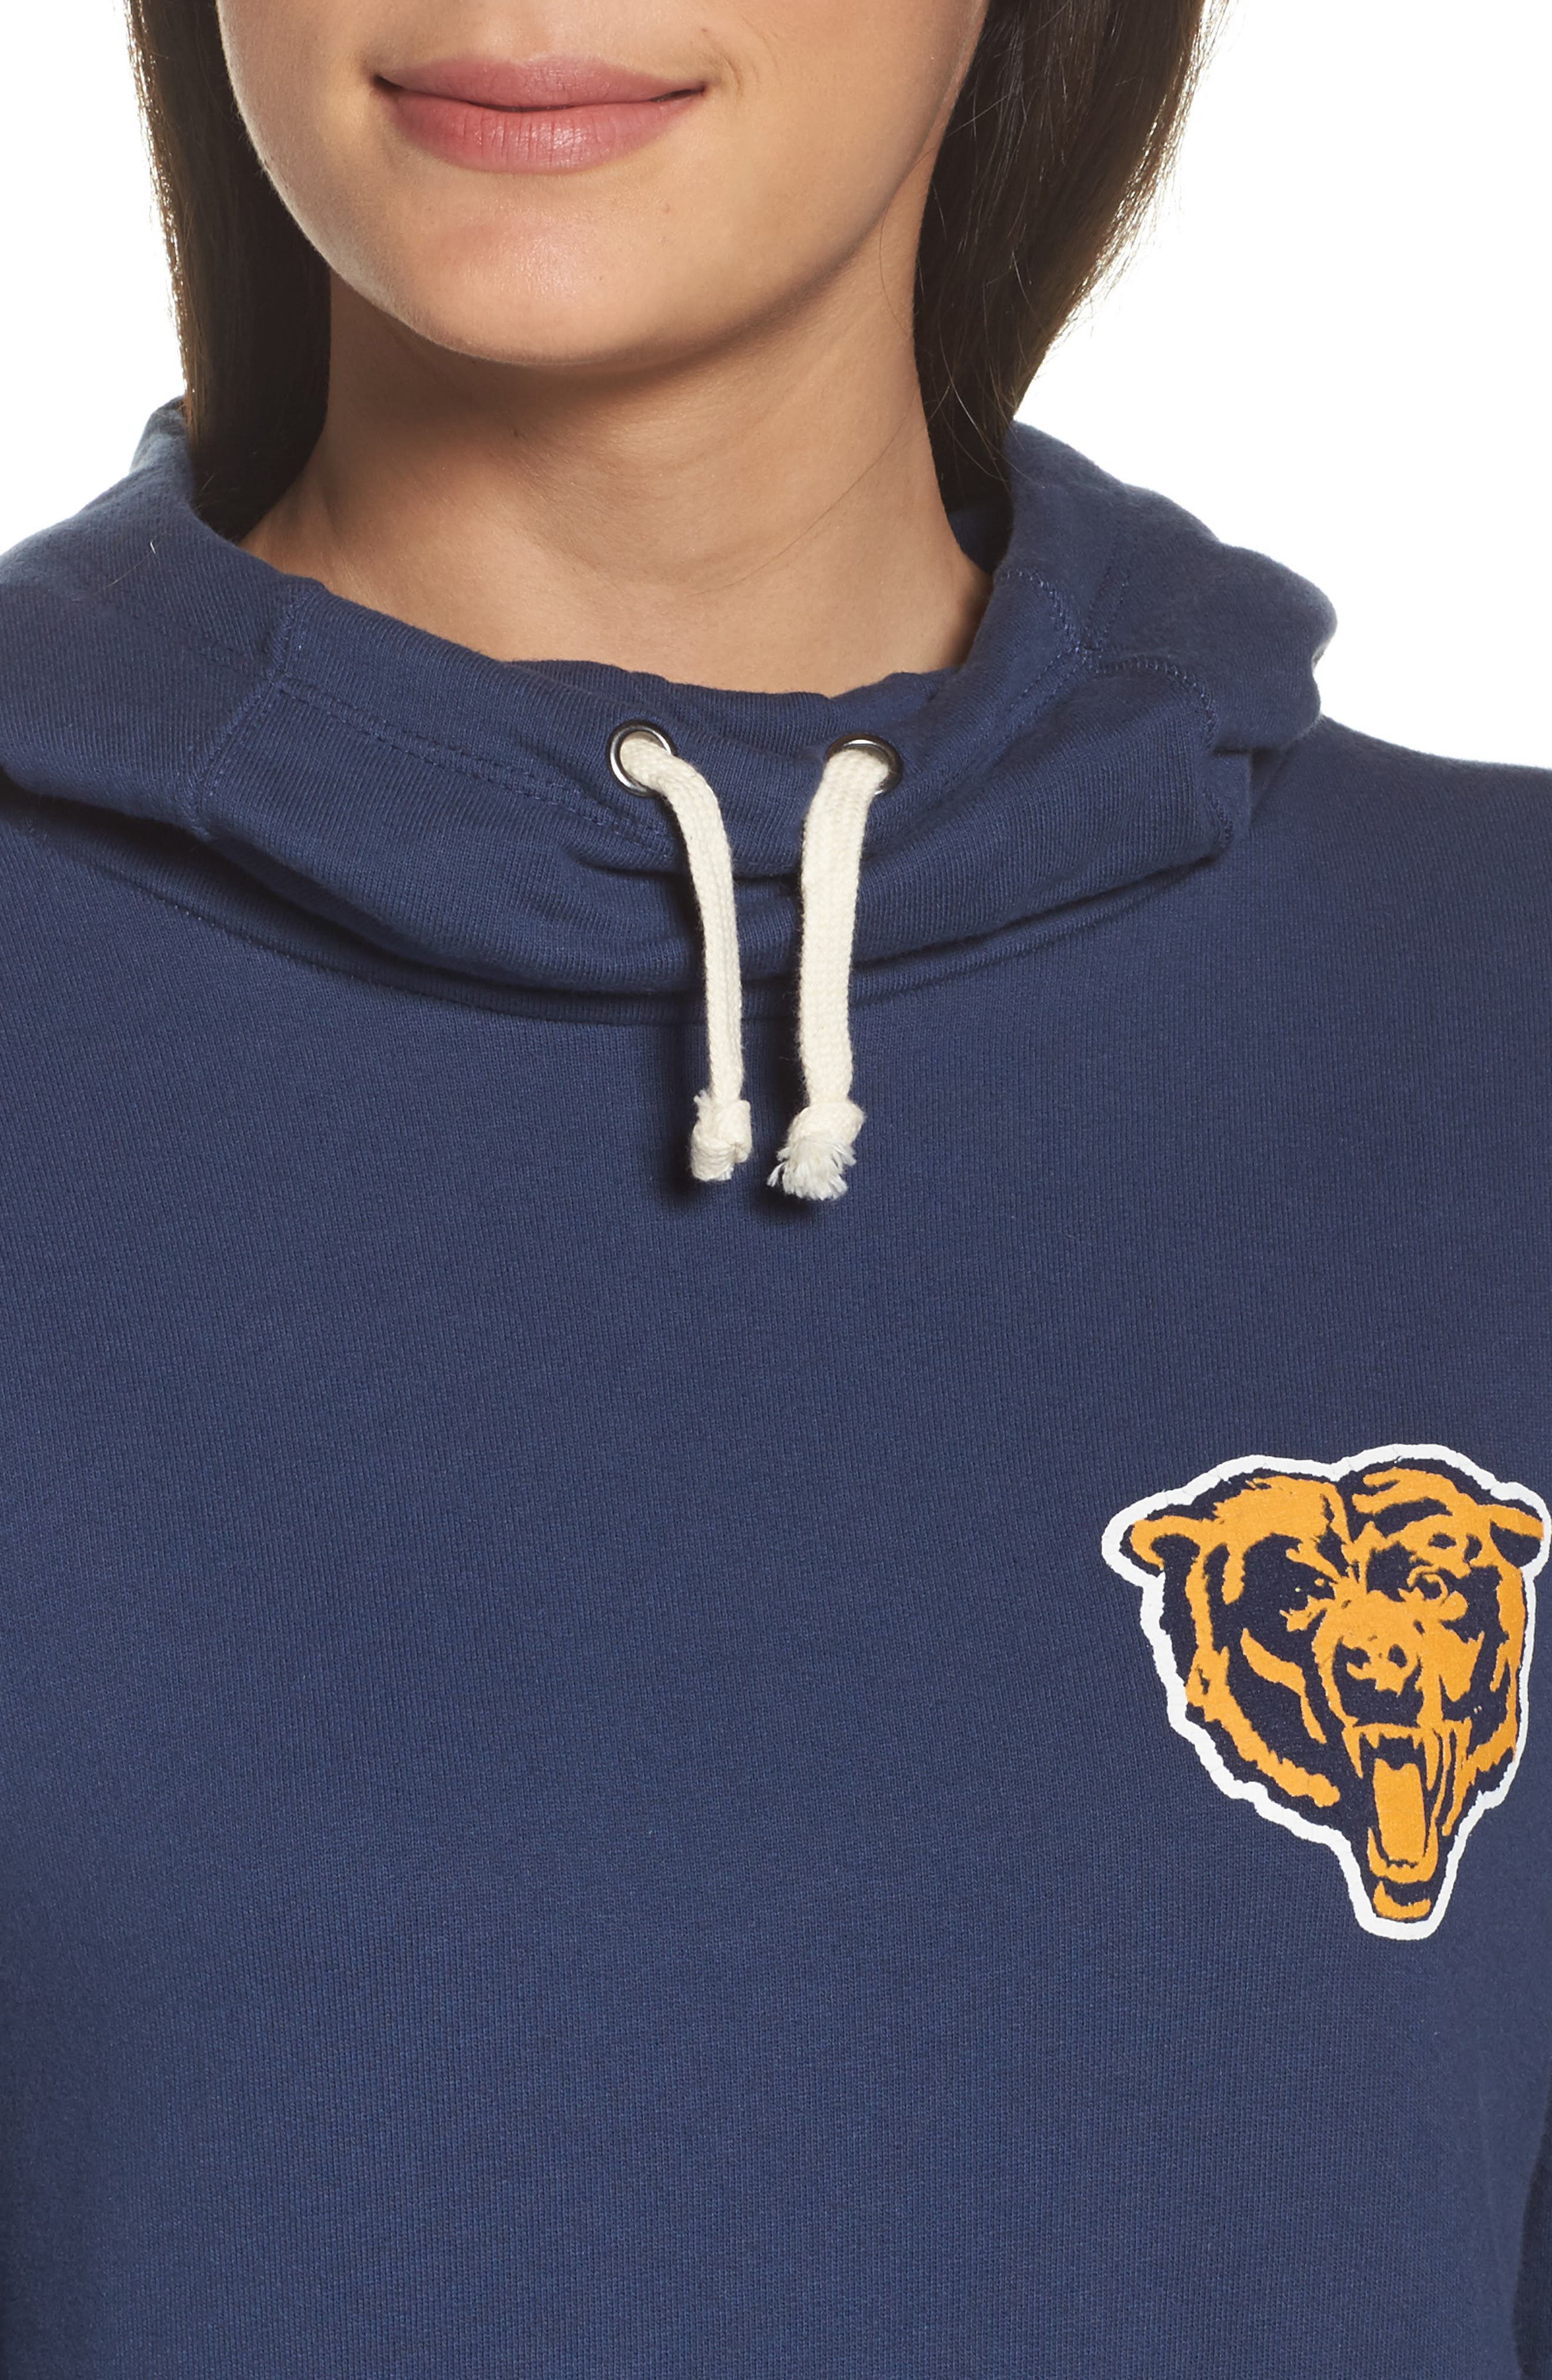 NFL Chicago Bears Sunday Hoodie,                             Alternate thumbnail 4, color,                             408